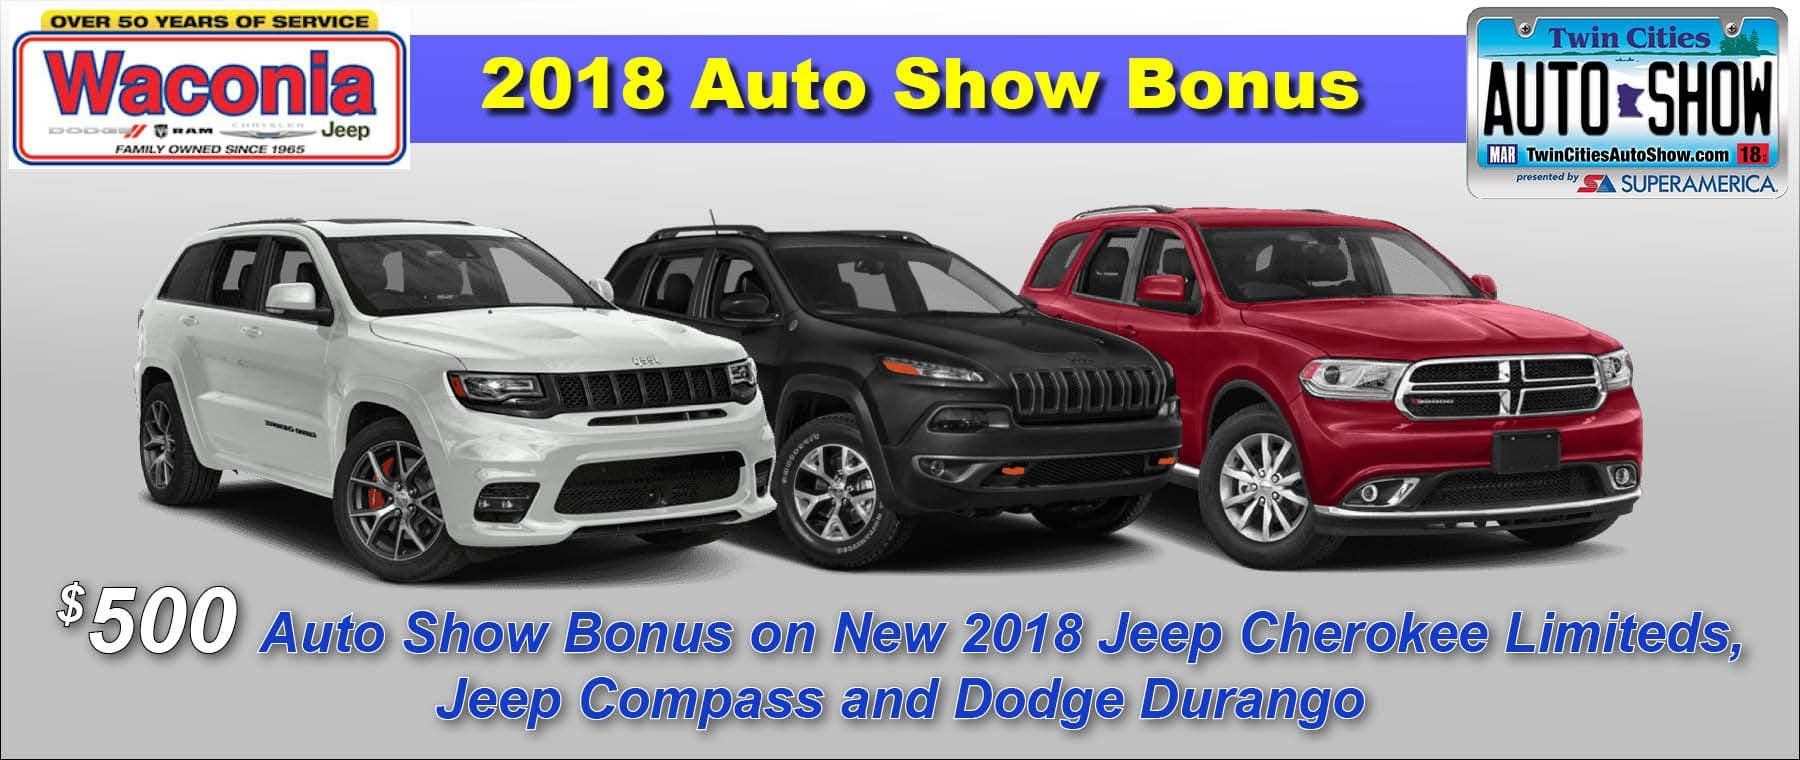 Waconia Dodge Chrysler Jeep Ram In 2020 Jeep Chrysler Jeep Vw Dealership